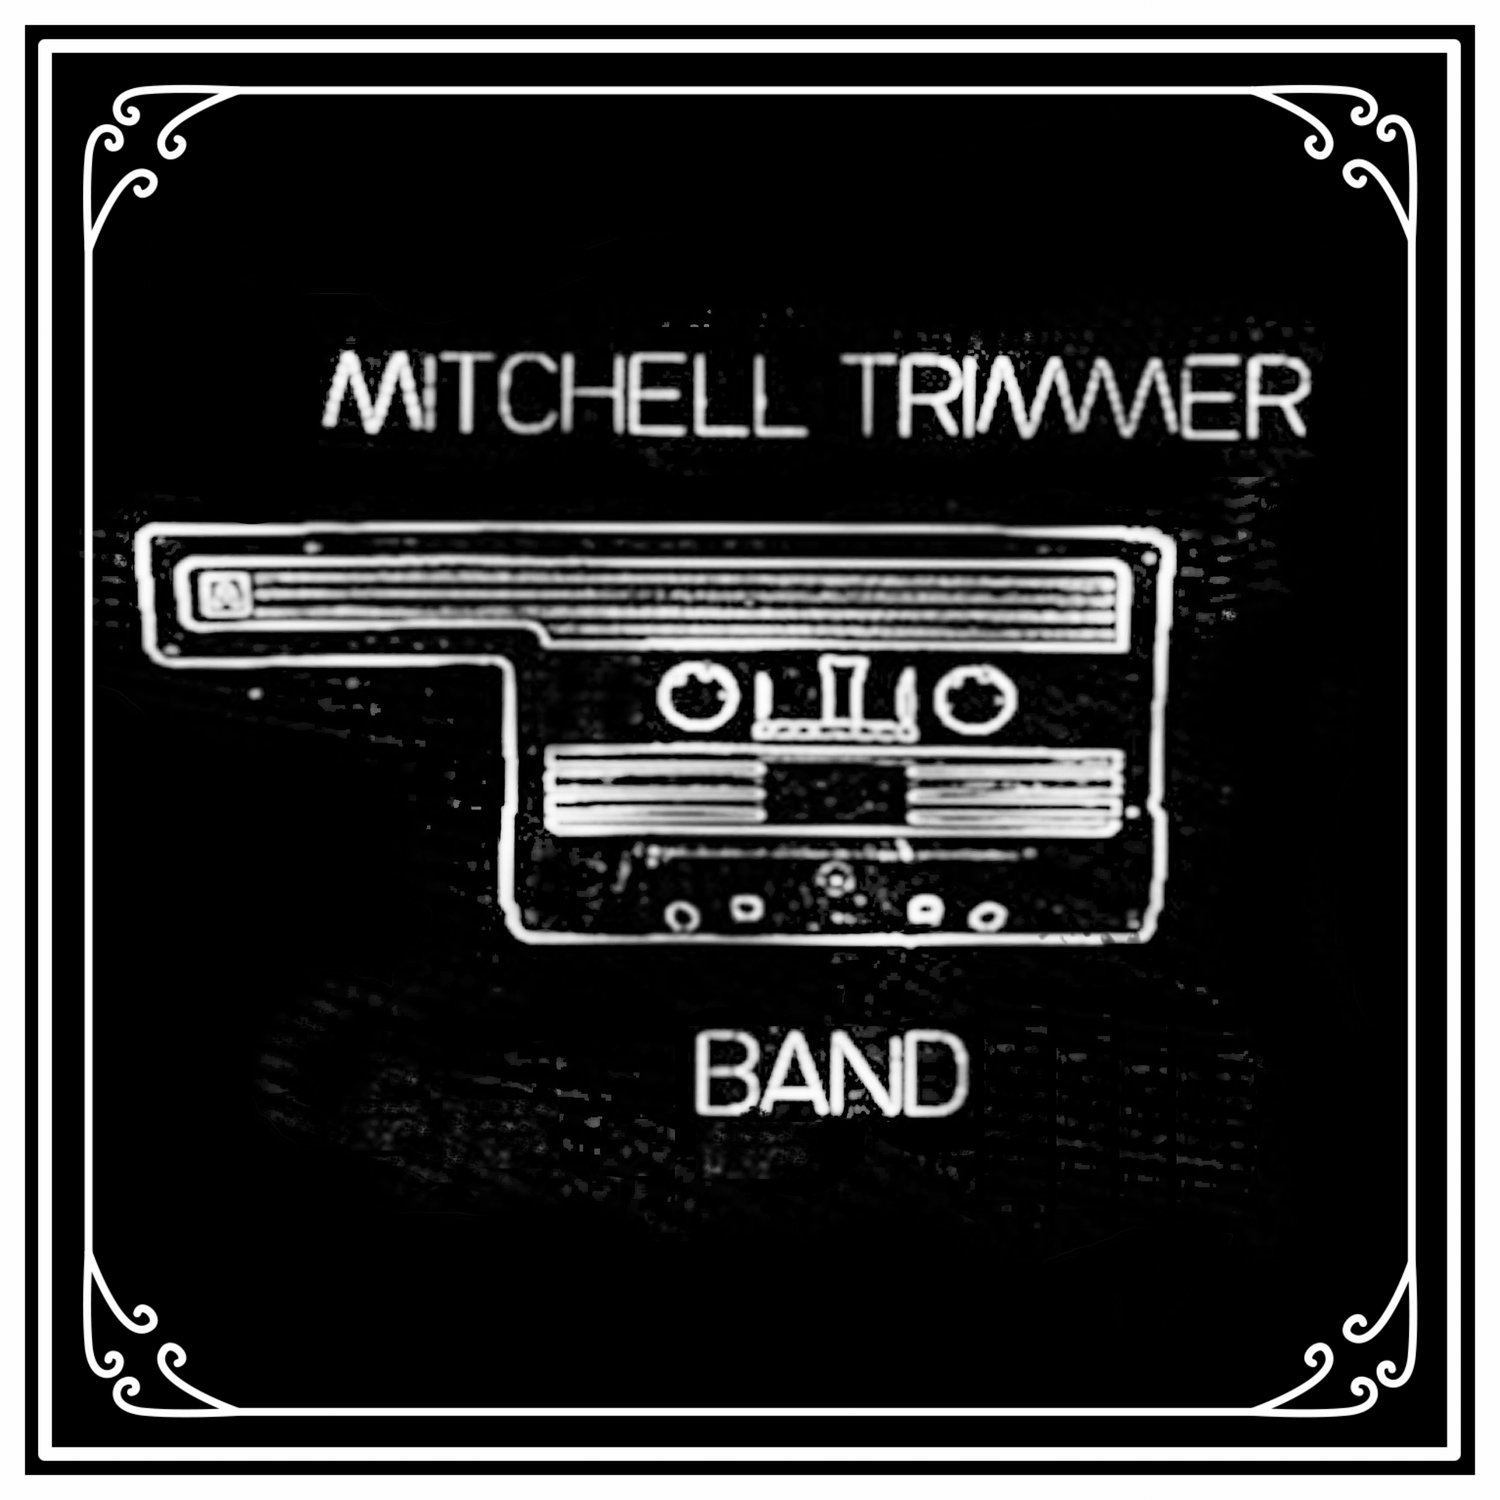 Mitchell Trimmer Band